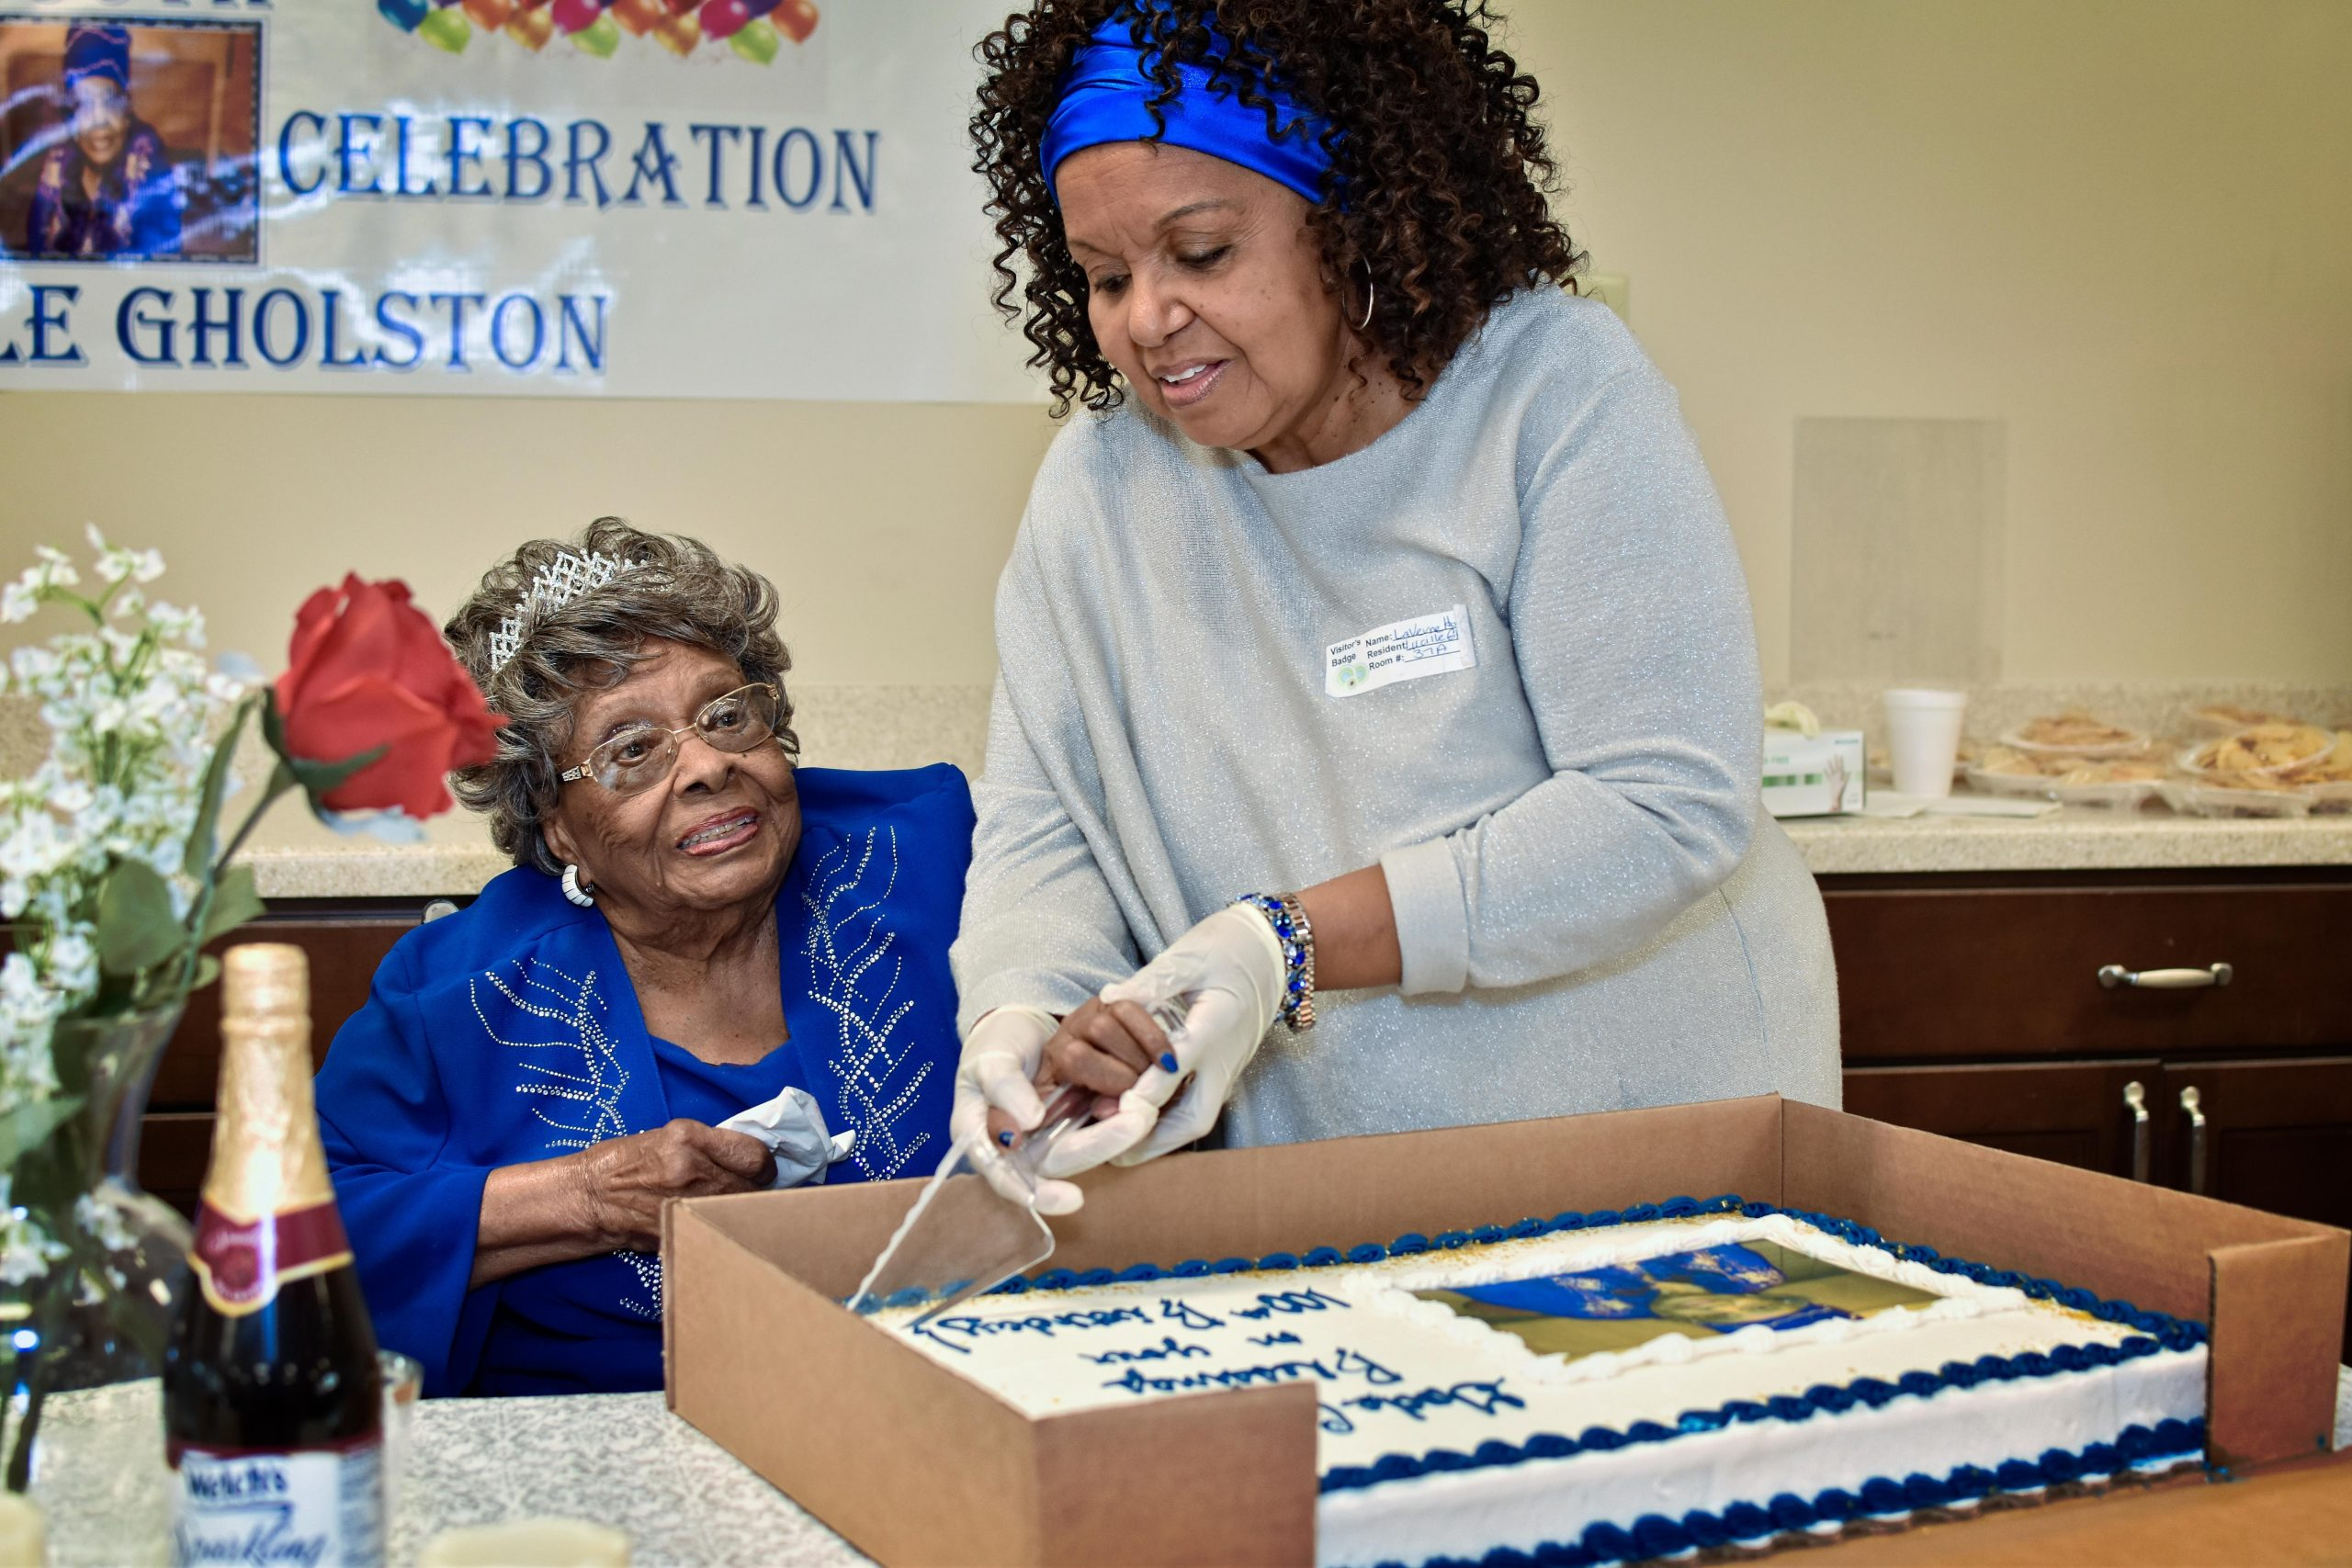 Levine Museum Of The New South Honors Gastonia Woman On 100th Birthday photo